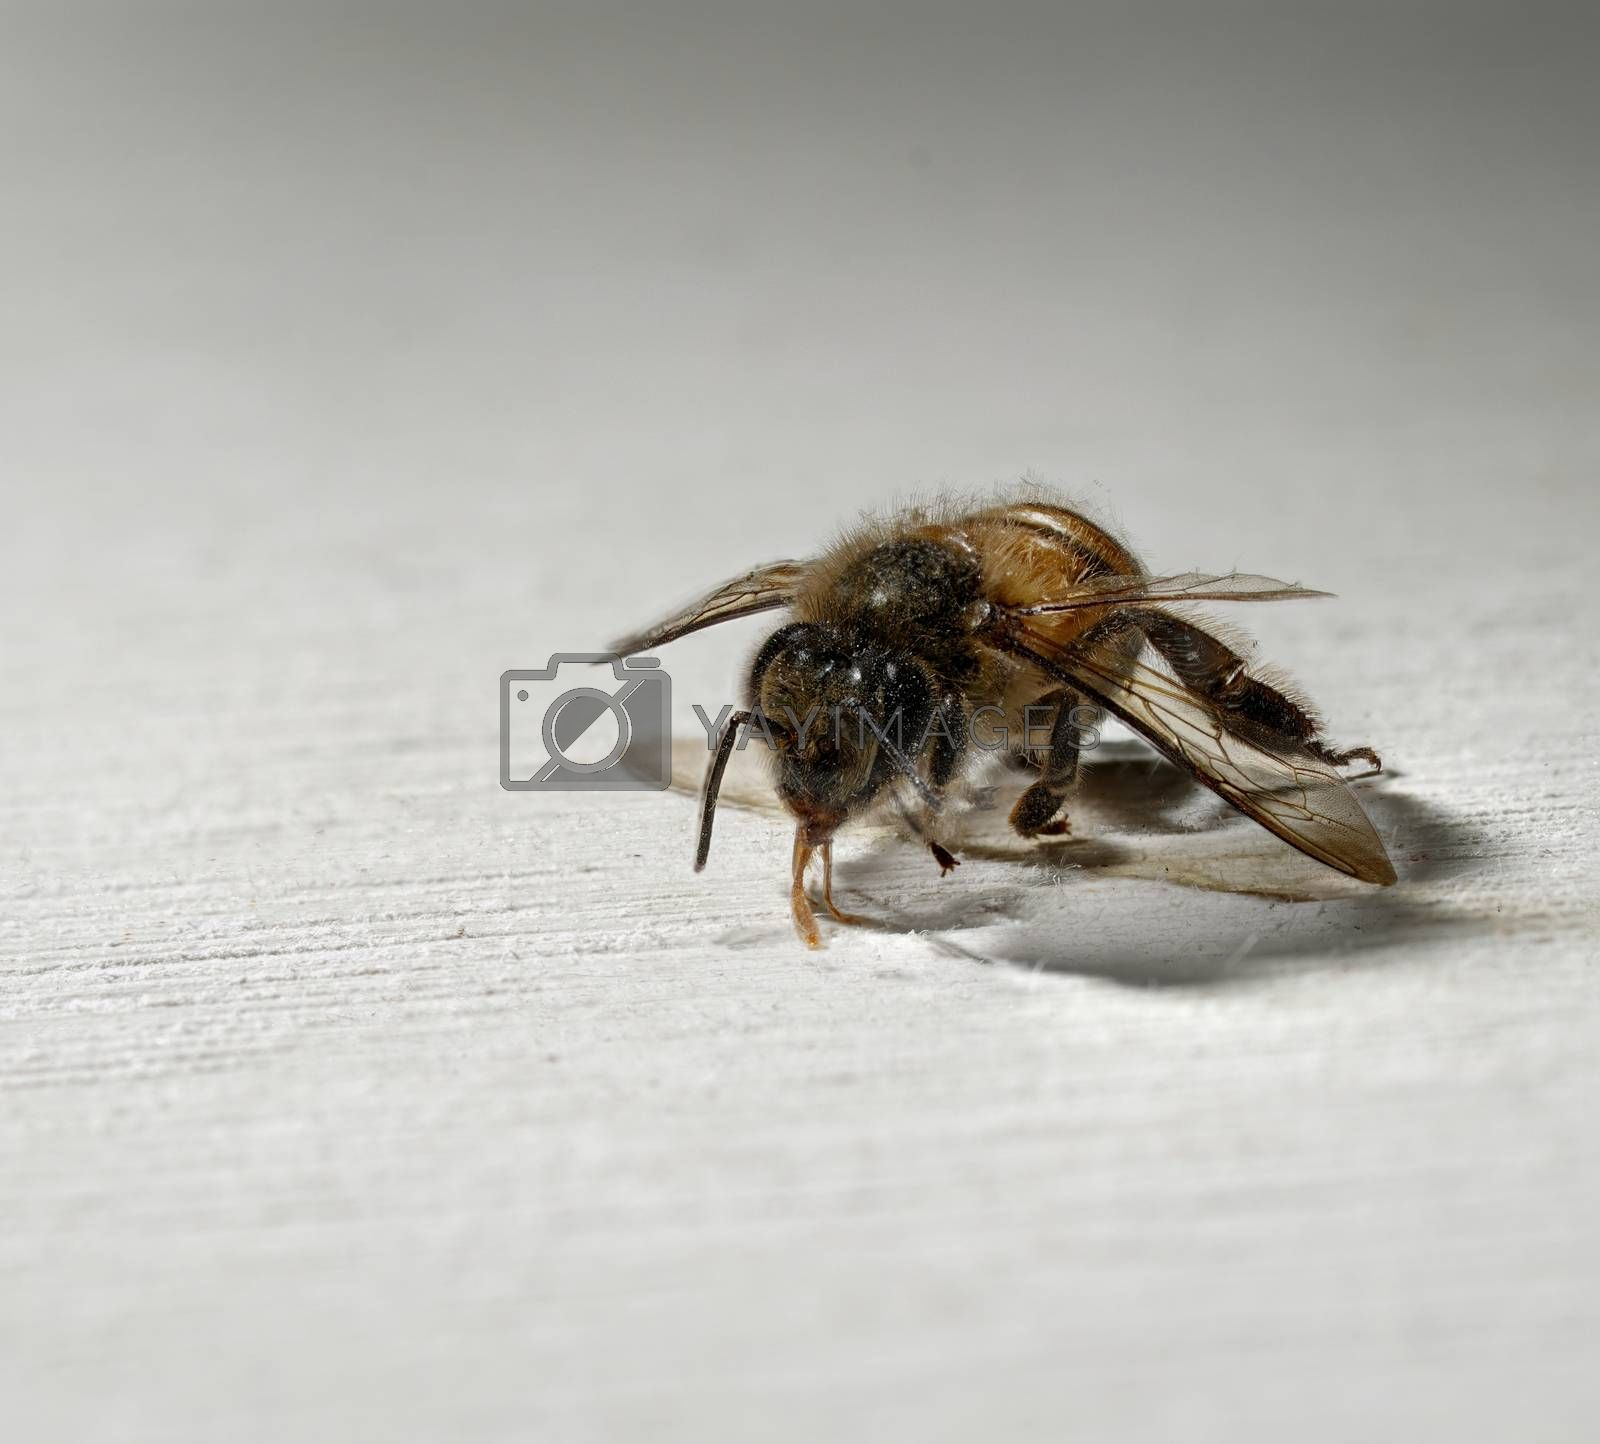 A close up of one worker bee on a white wooden background.